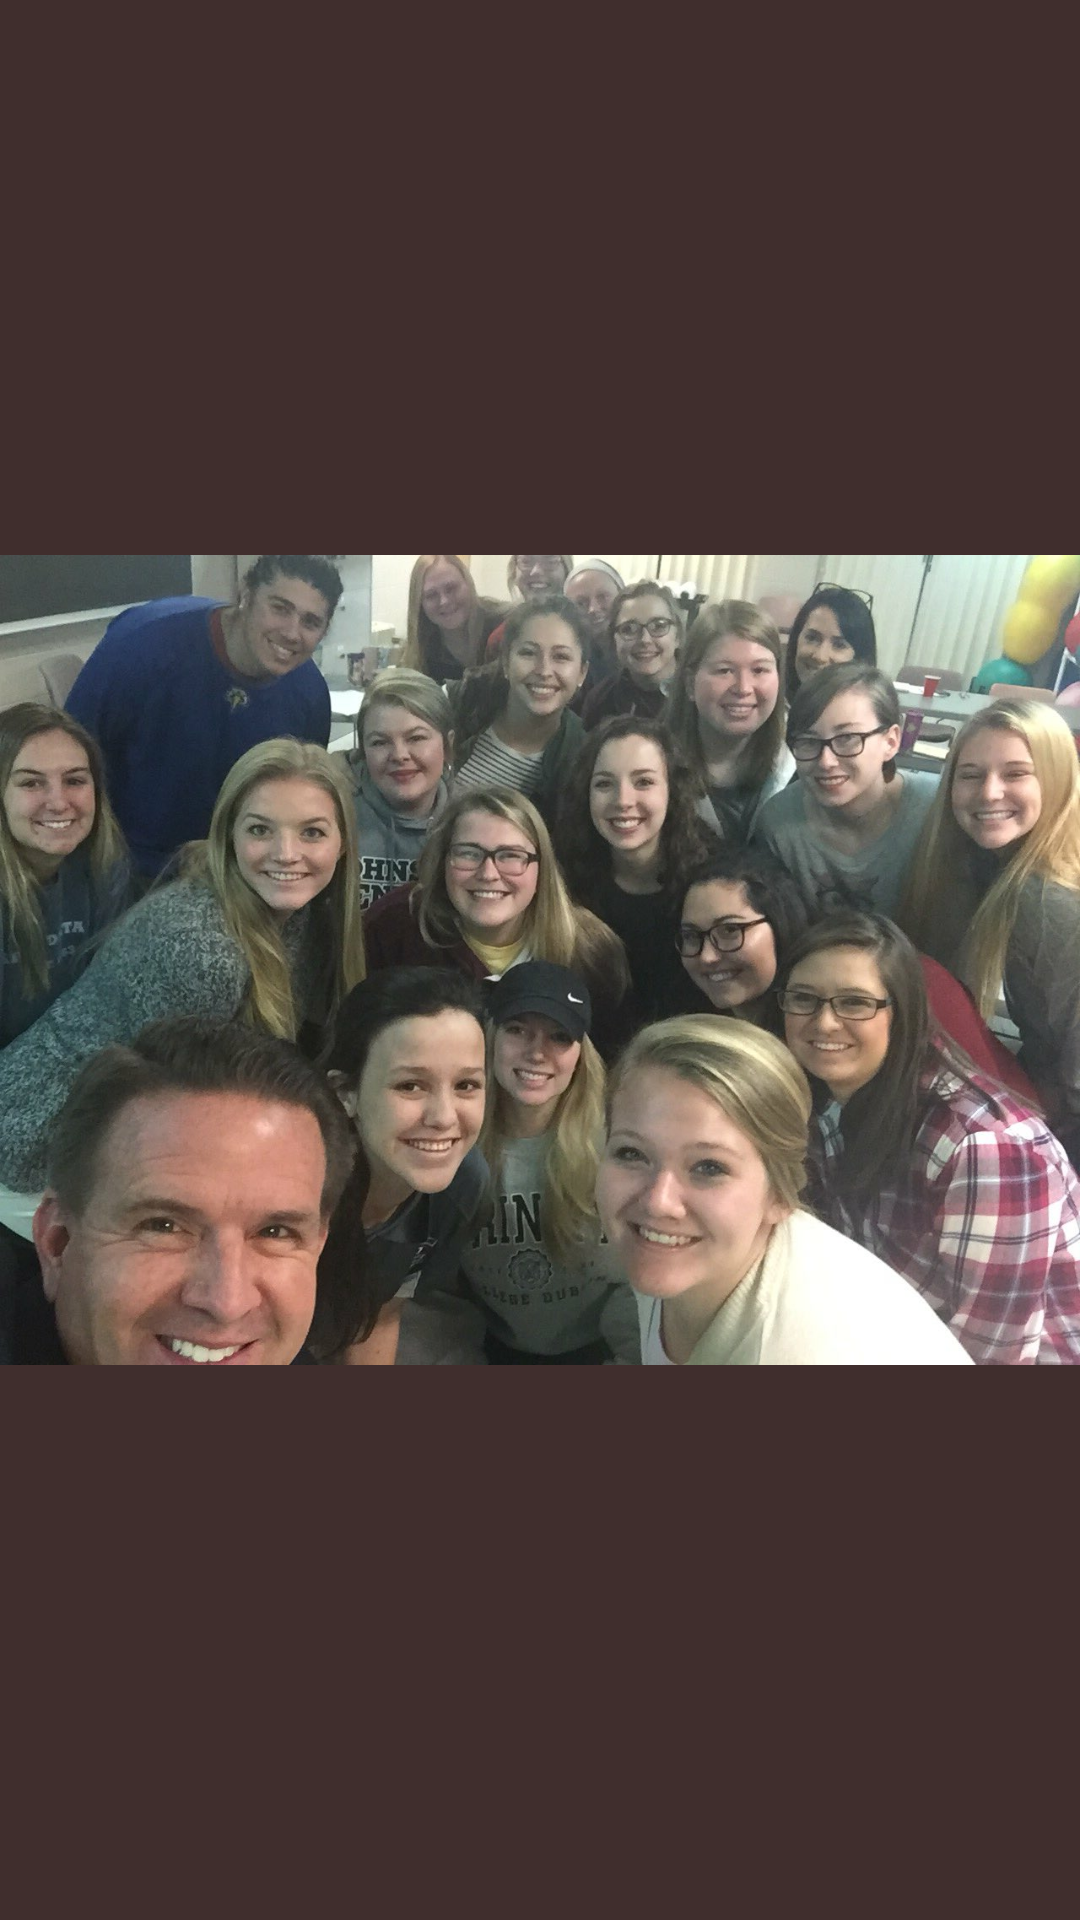 President Benson Selfie with OTS 301 Students